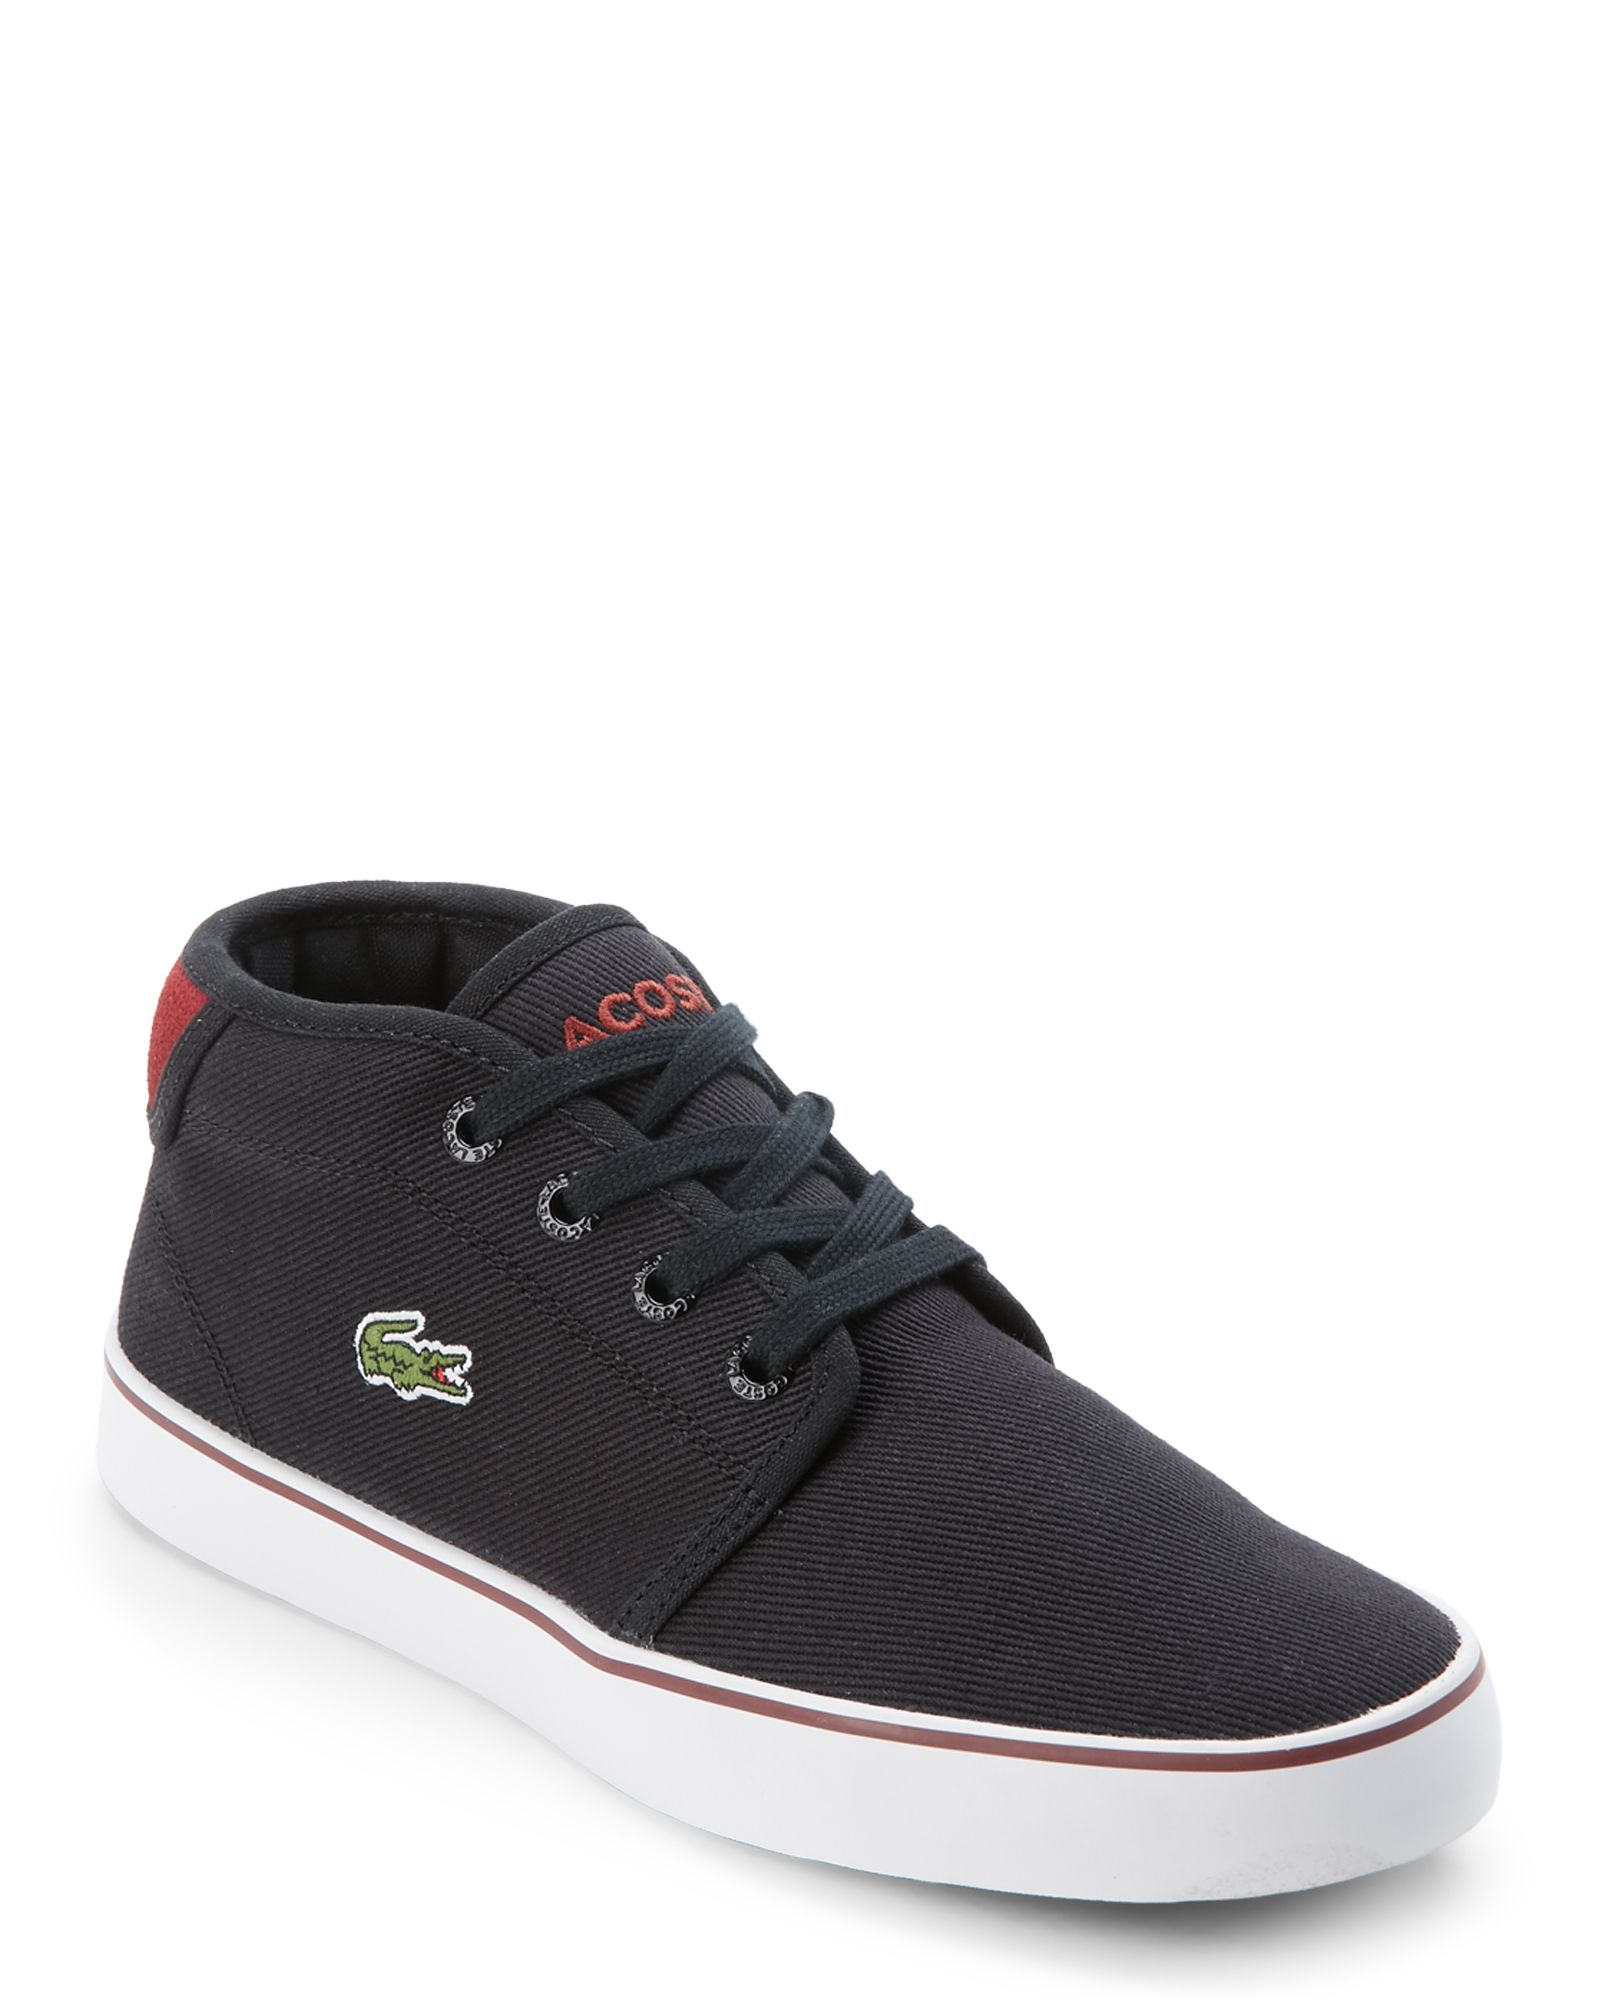 ad758edd3 Lacoste (Kids Boys) Navy Ampthill 116 Canvas Mid Sneakers